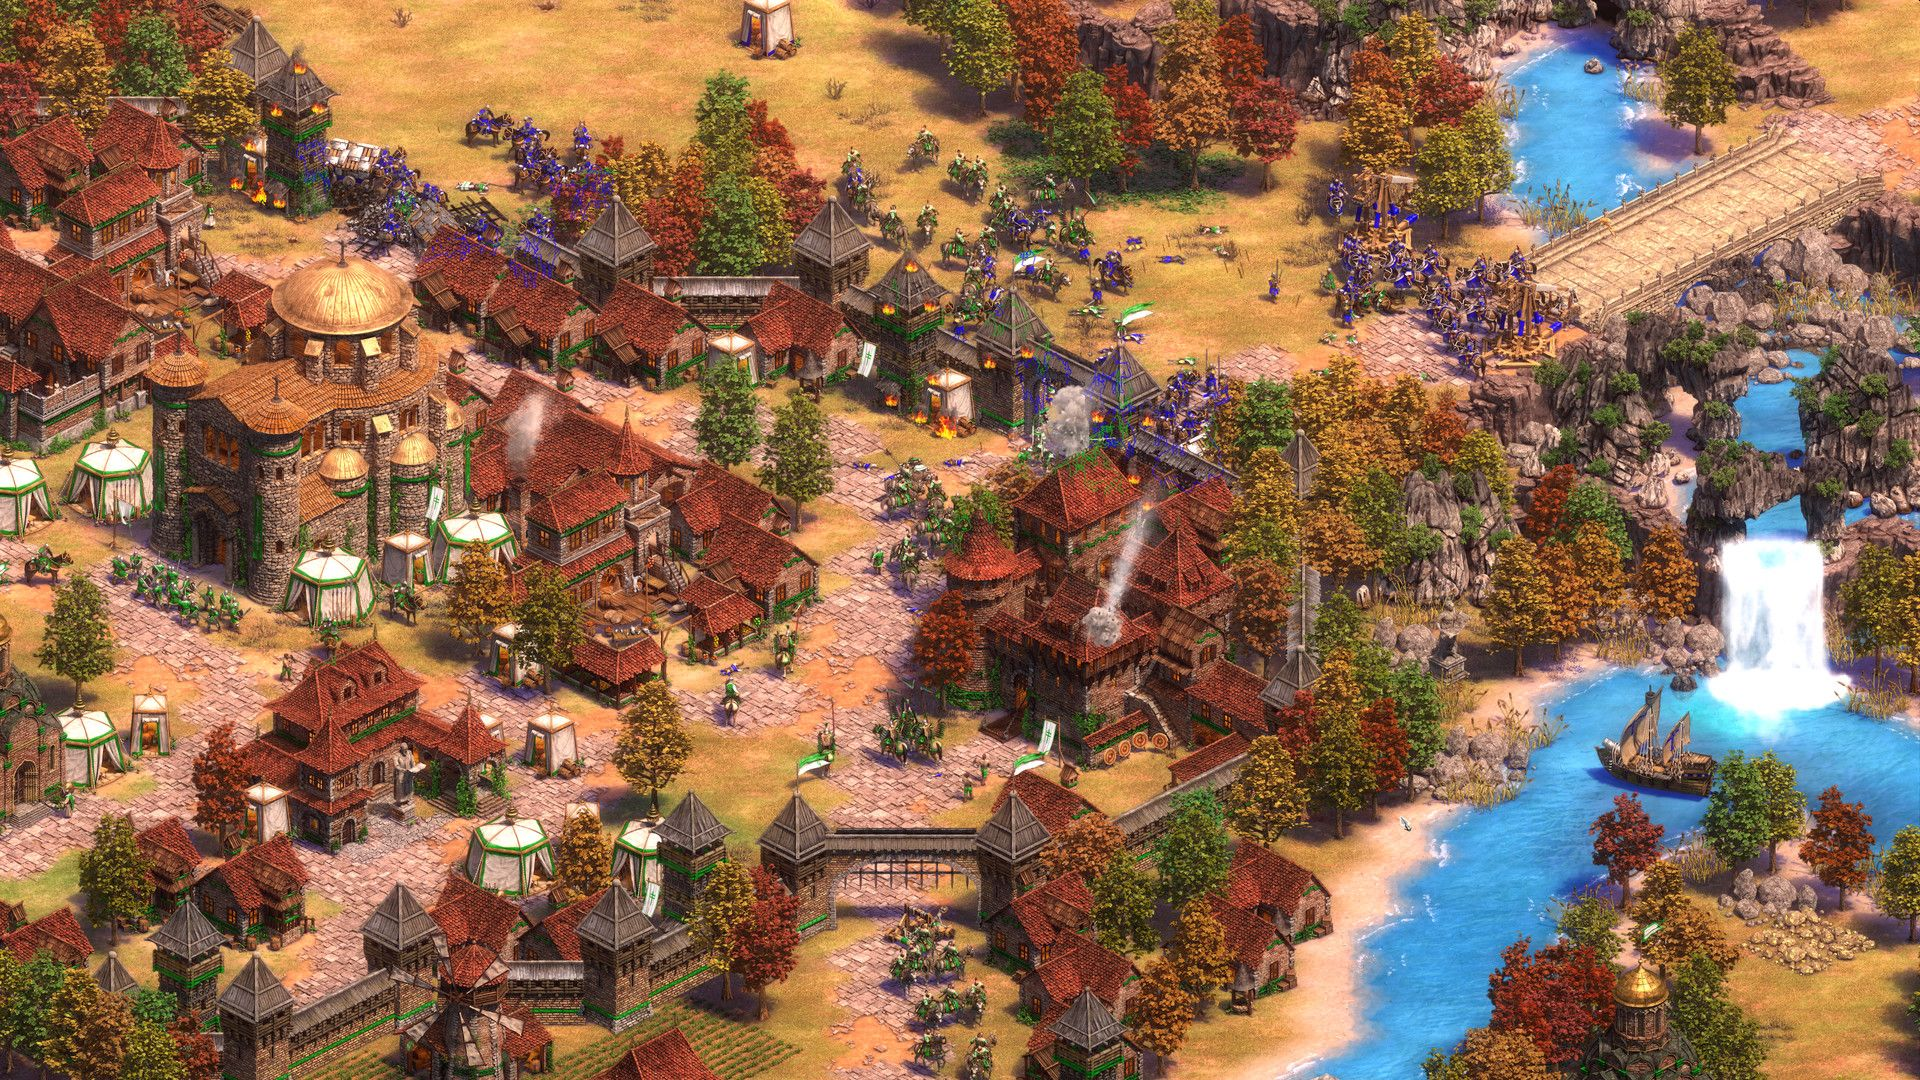 Age of Empires II DE gets new Steam beta program to test future updates